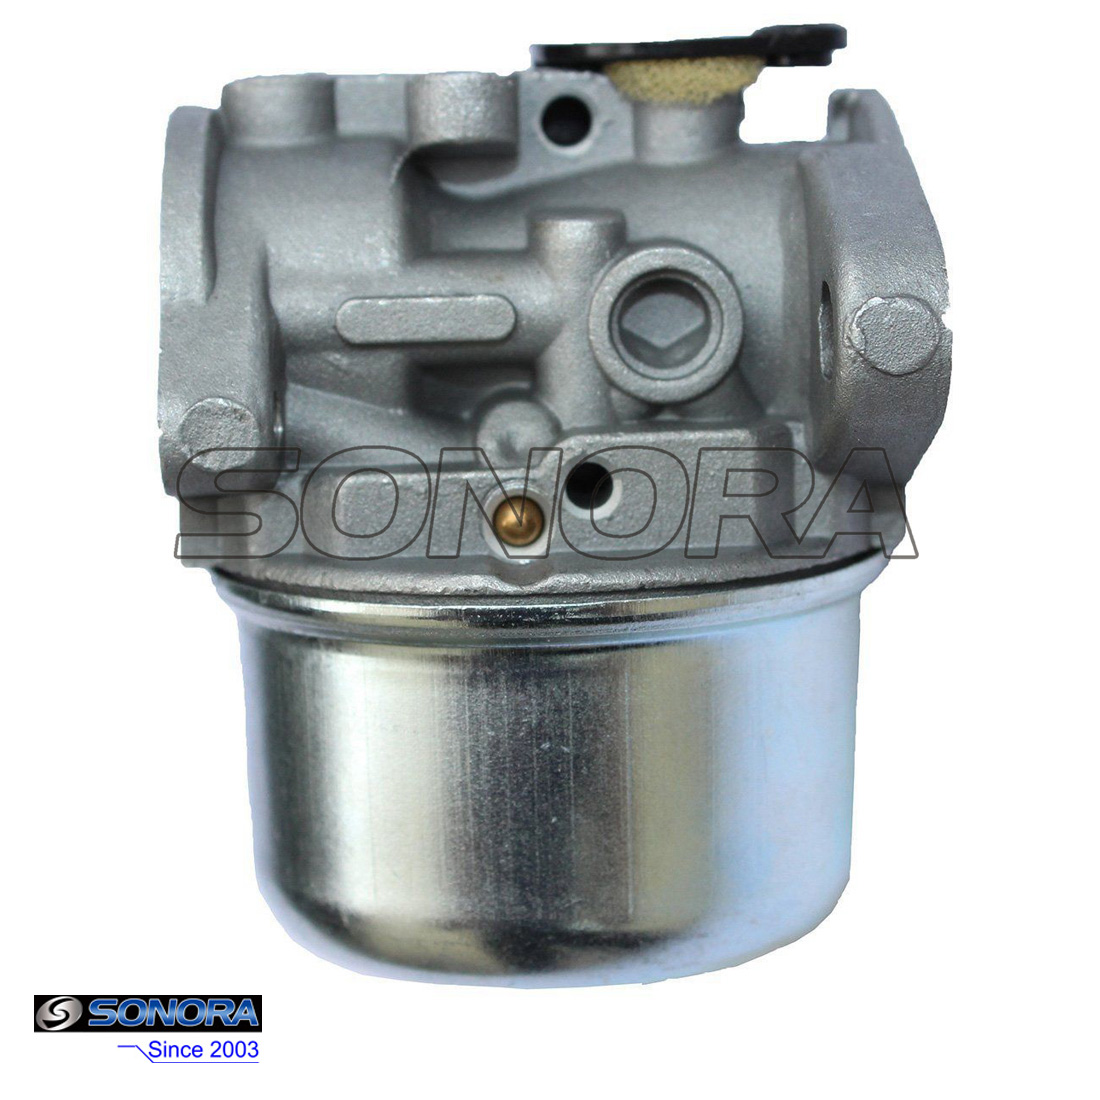 BRIGGS & STRATTON 498254 Carburetor